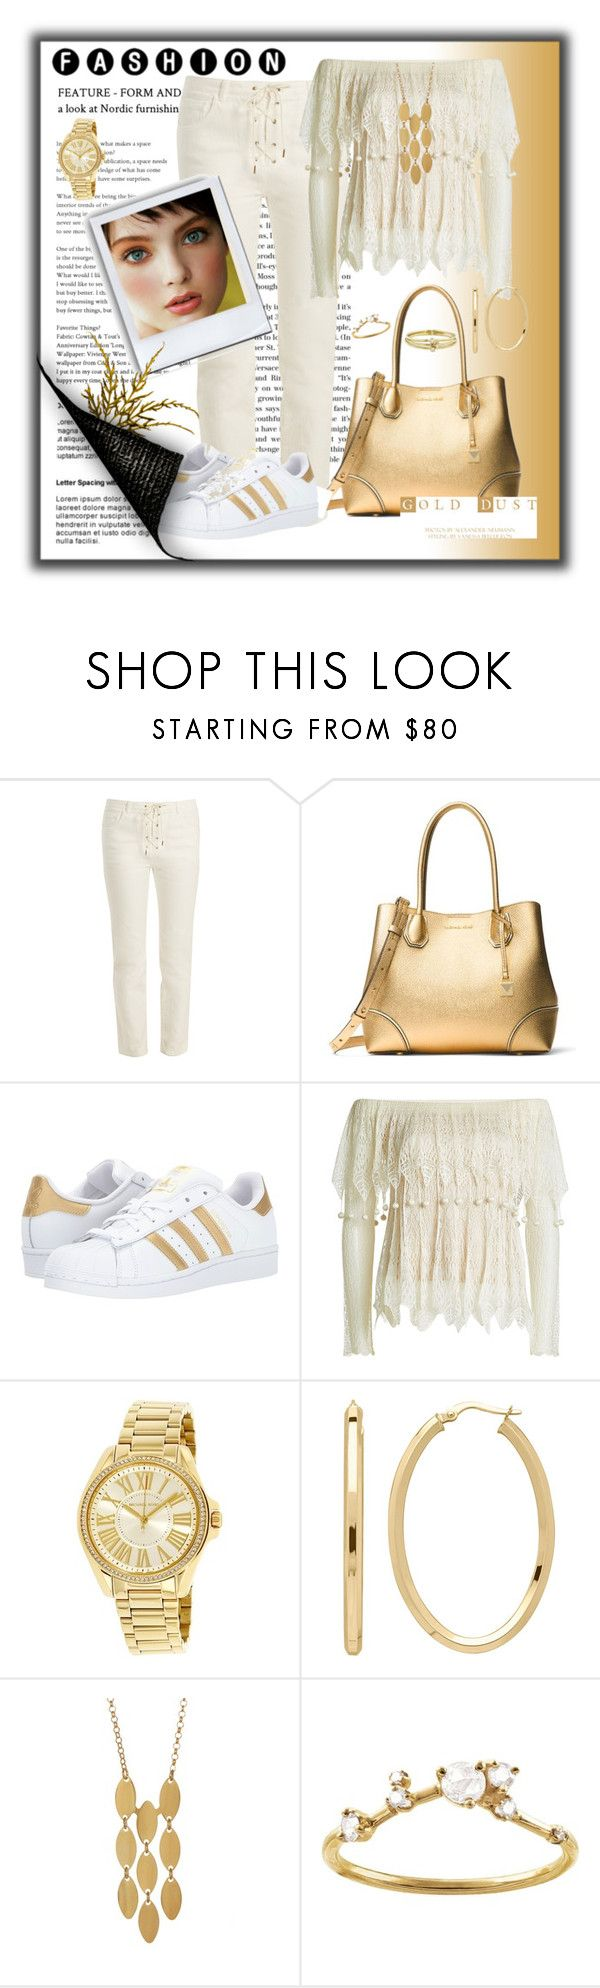 """""""Midas Touch"""" by ohlmanvickie ❤ liked on Polyvore featuring Chloé, MICHAEL Michael Kors, adidas Originals, Alexander McQueen, Michael Kors, Everlasting Gold, Argento Vivo, WWAKE and Jennifer Meyer Jewelry"""